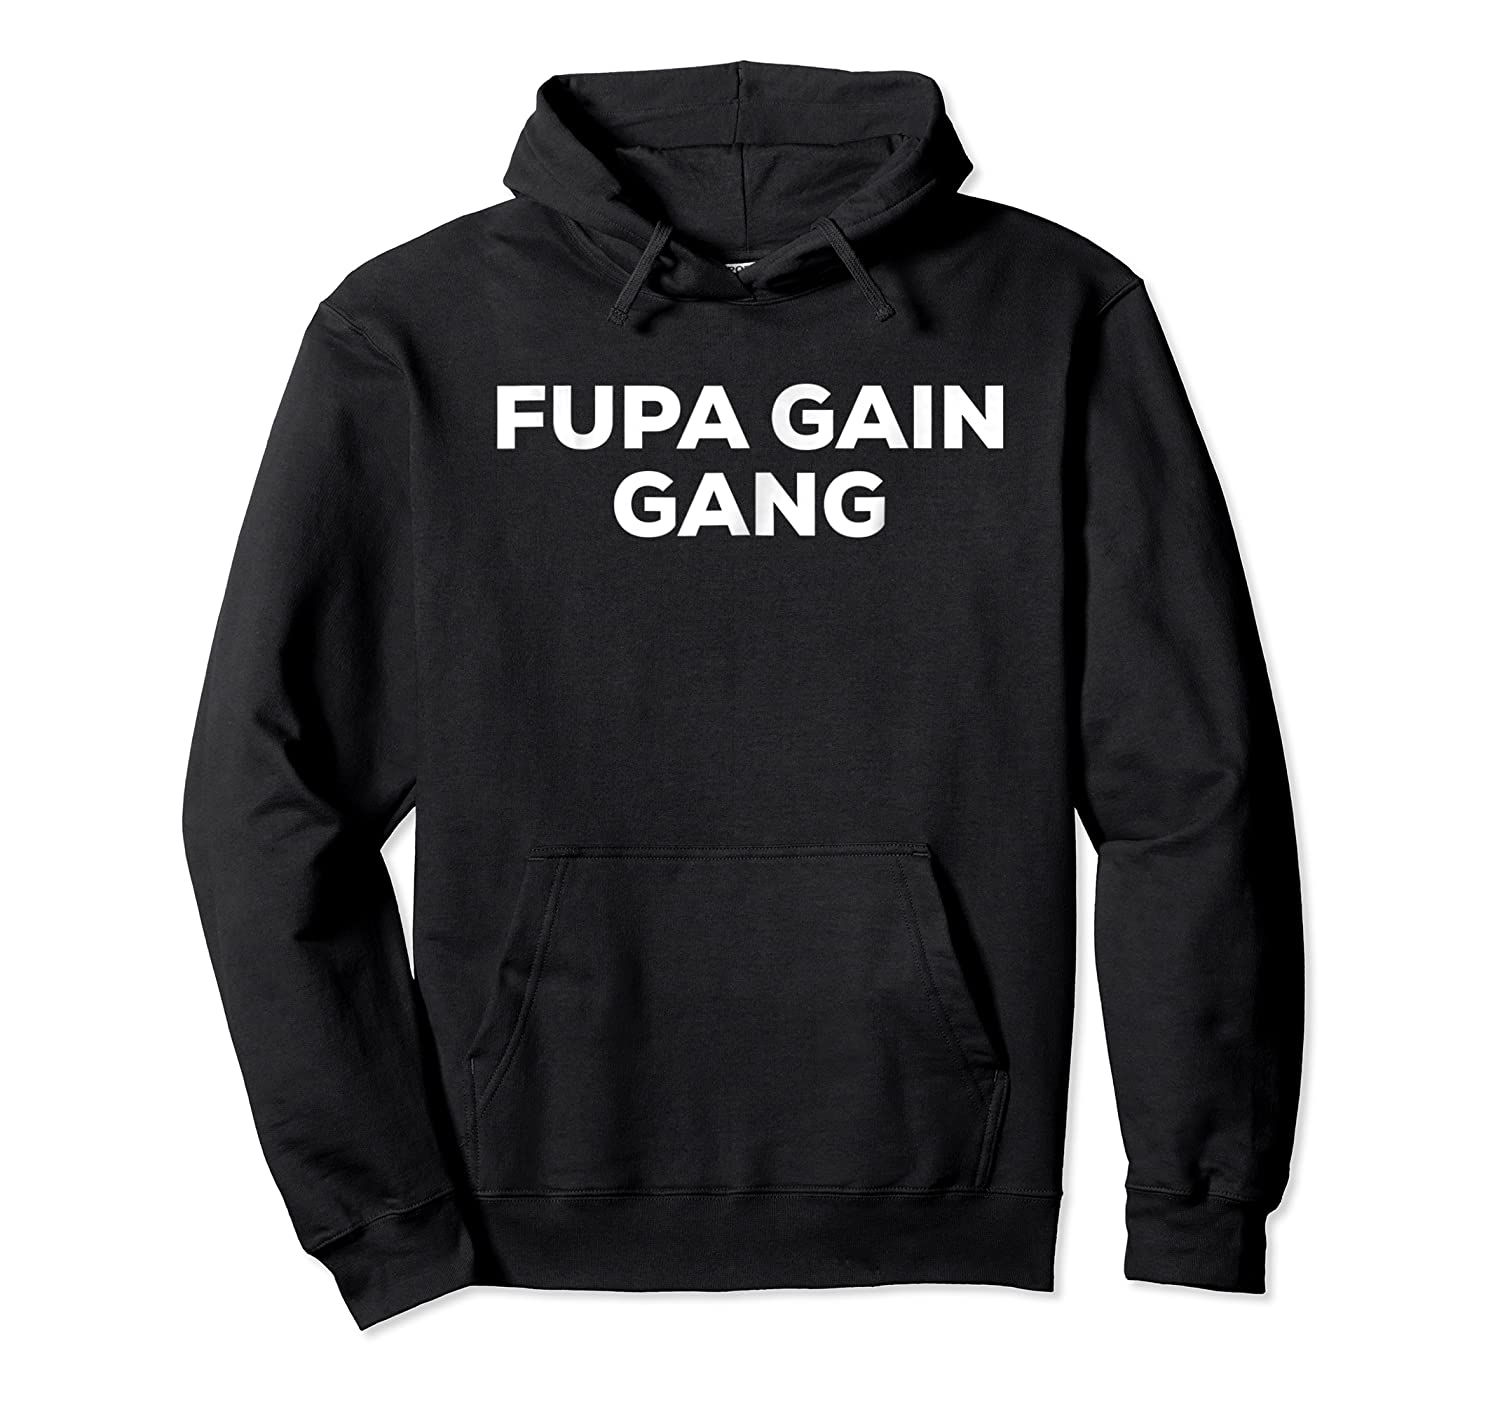 Fupa Gain Gang Shirt For Belly Fat Fans Tee Unisex Pullover Hoodie